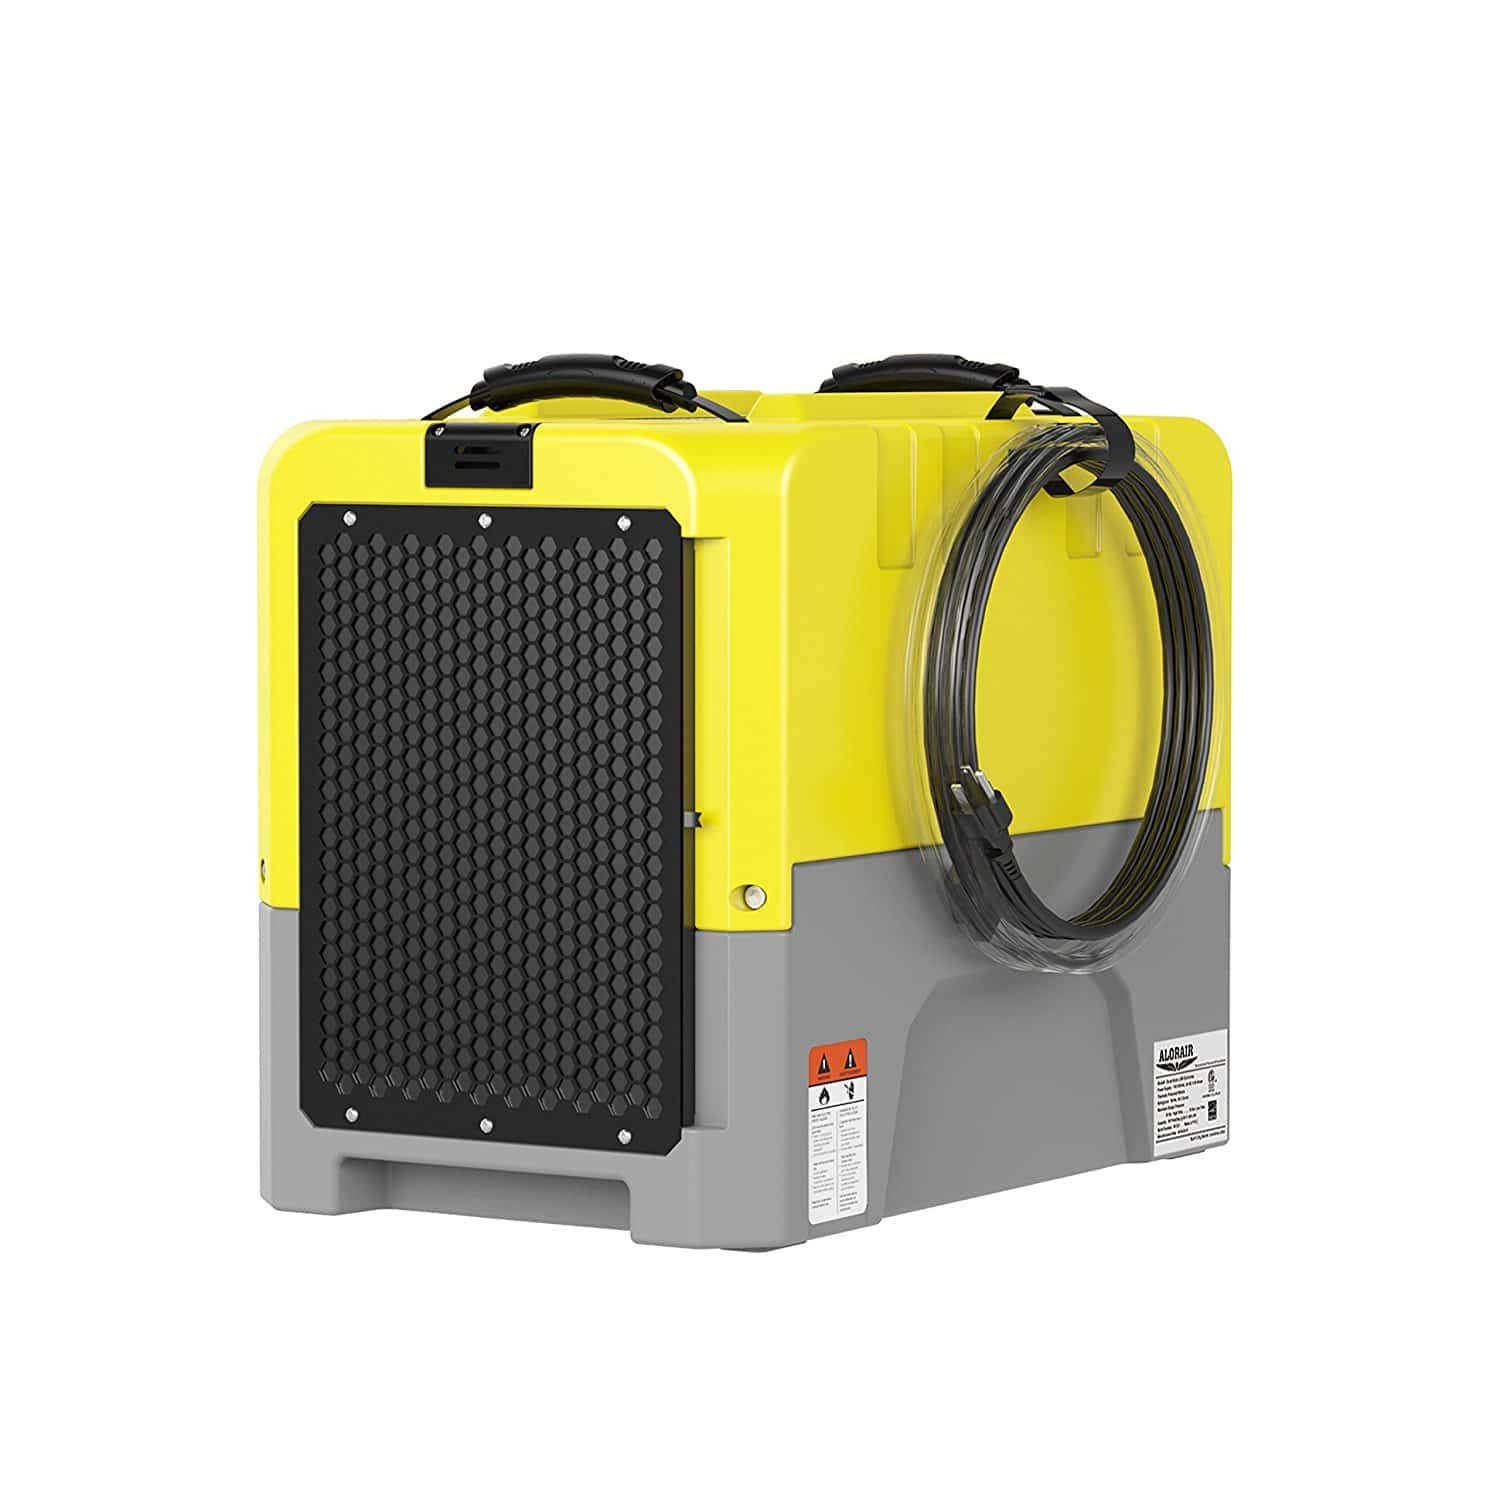 commercial dehumidifier: Definitely the best commercial dehumidifier out there!